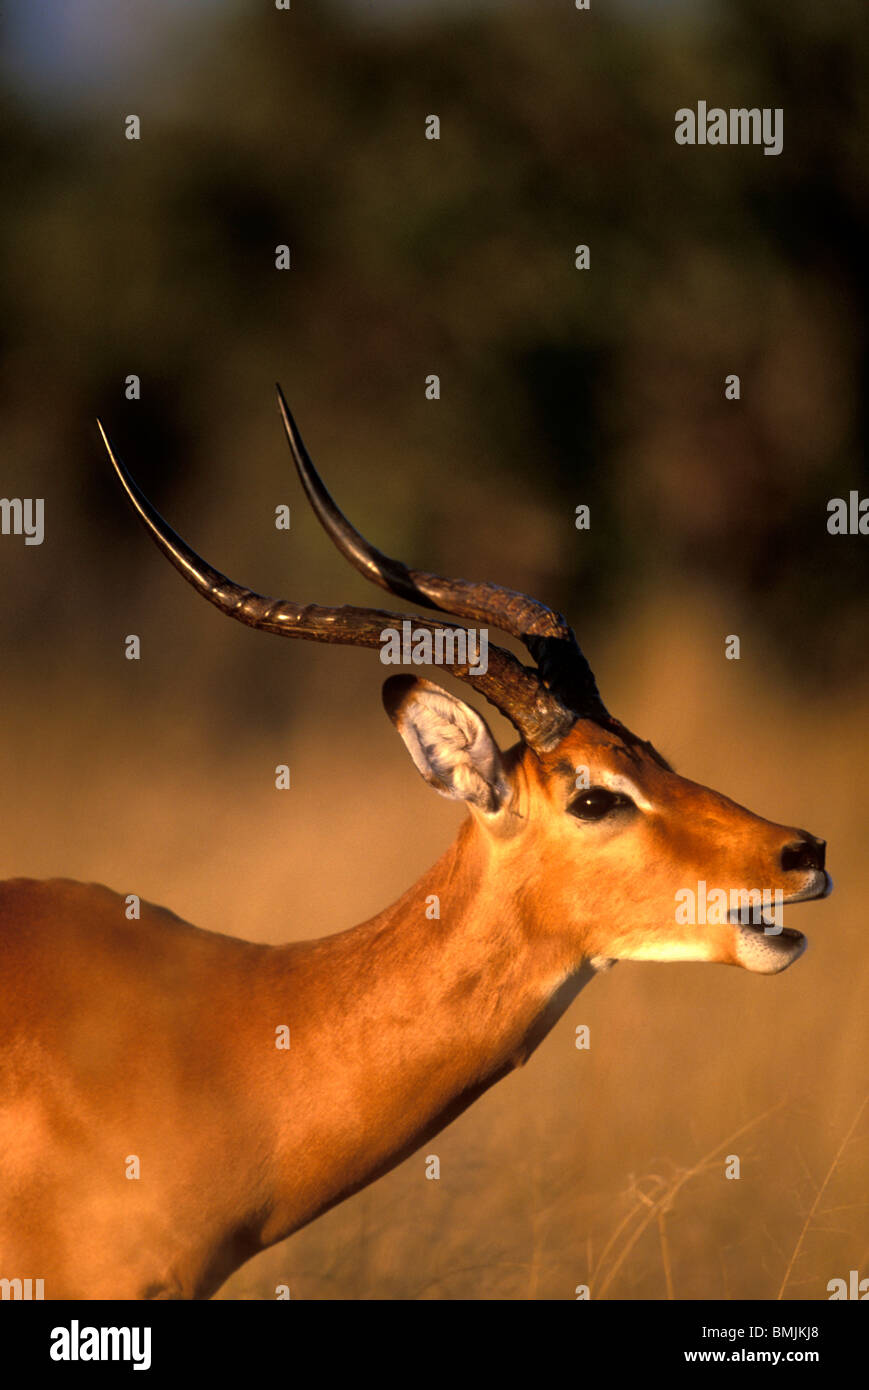 Africa, Botswana, Chobe National Park, Impala (Aepyceros melampus) in tall grass at sunset in Savuti Marsh Stock Photo